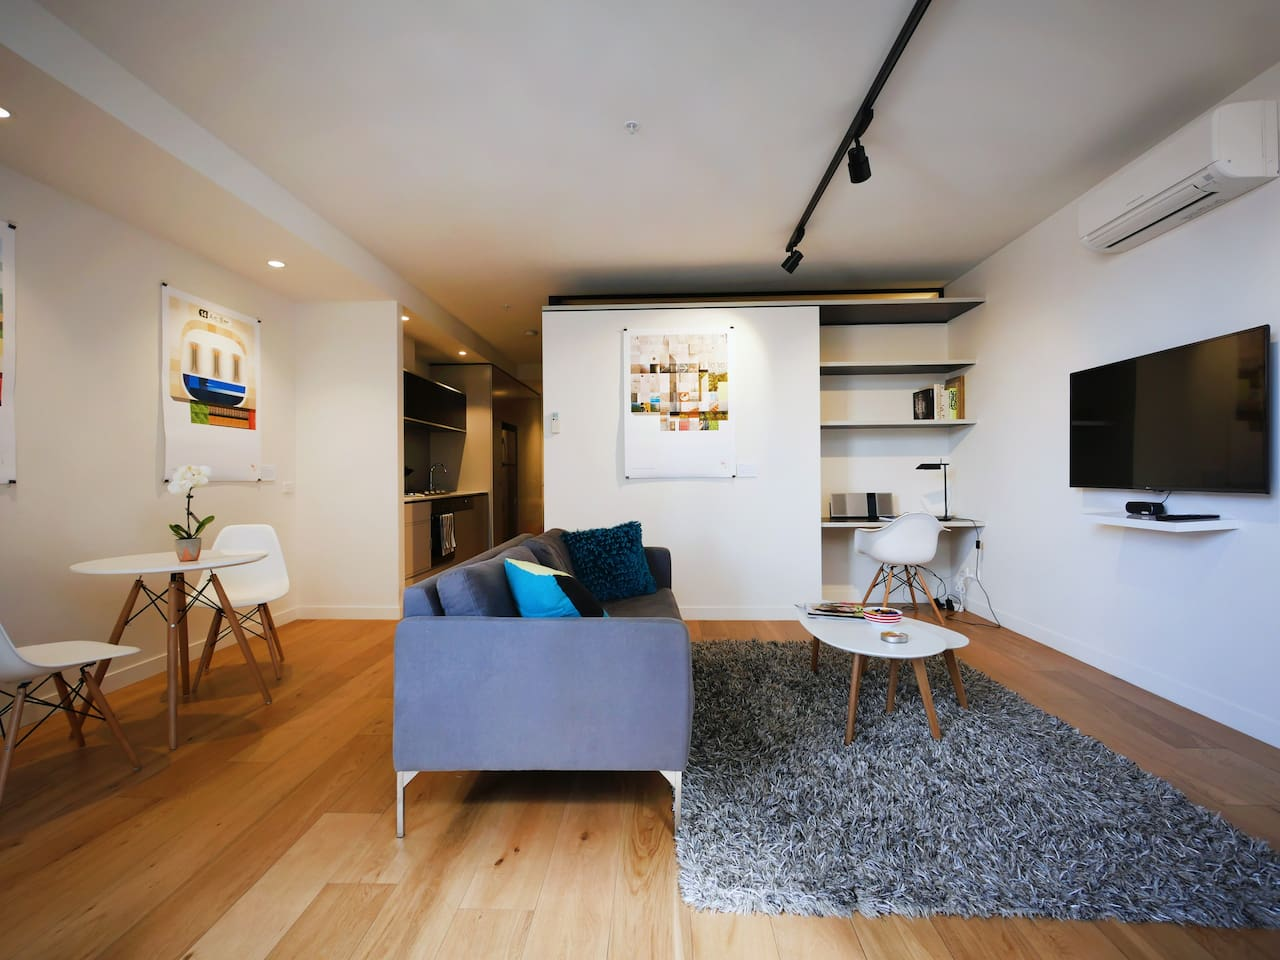 Light and fresh open plan living space set out like a private gallery